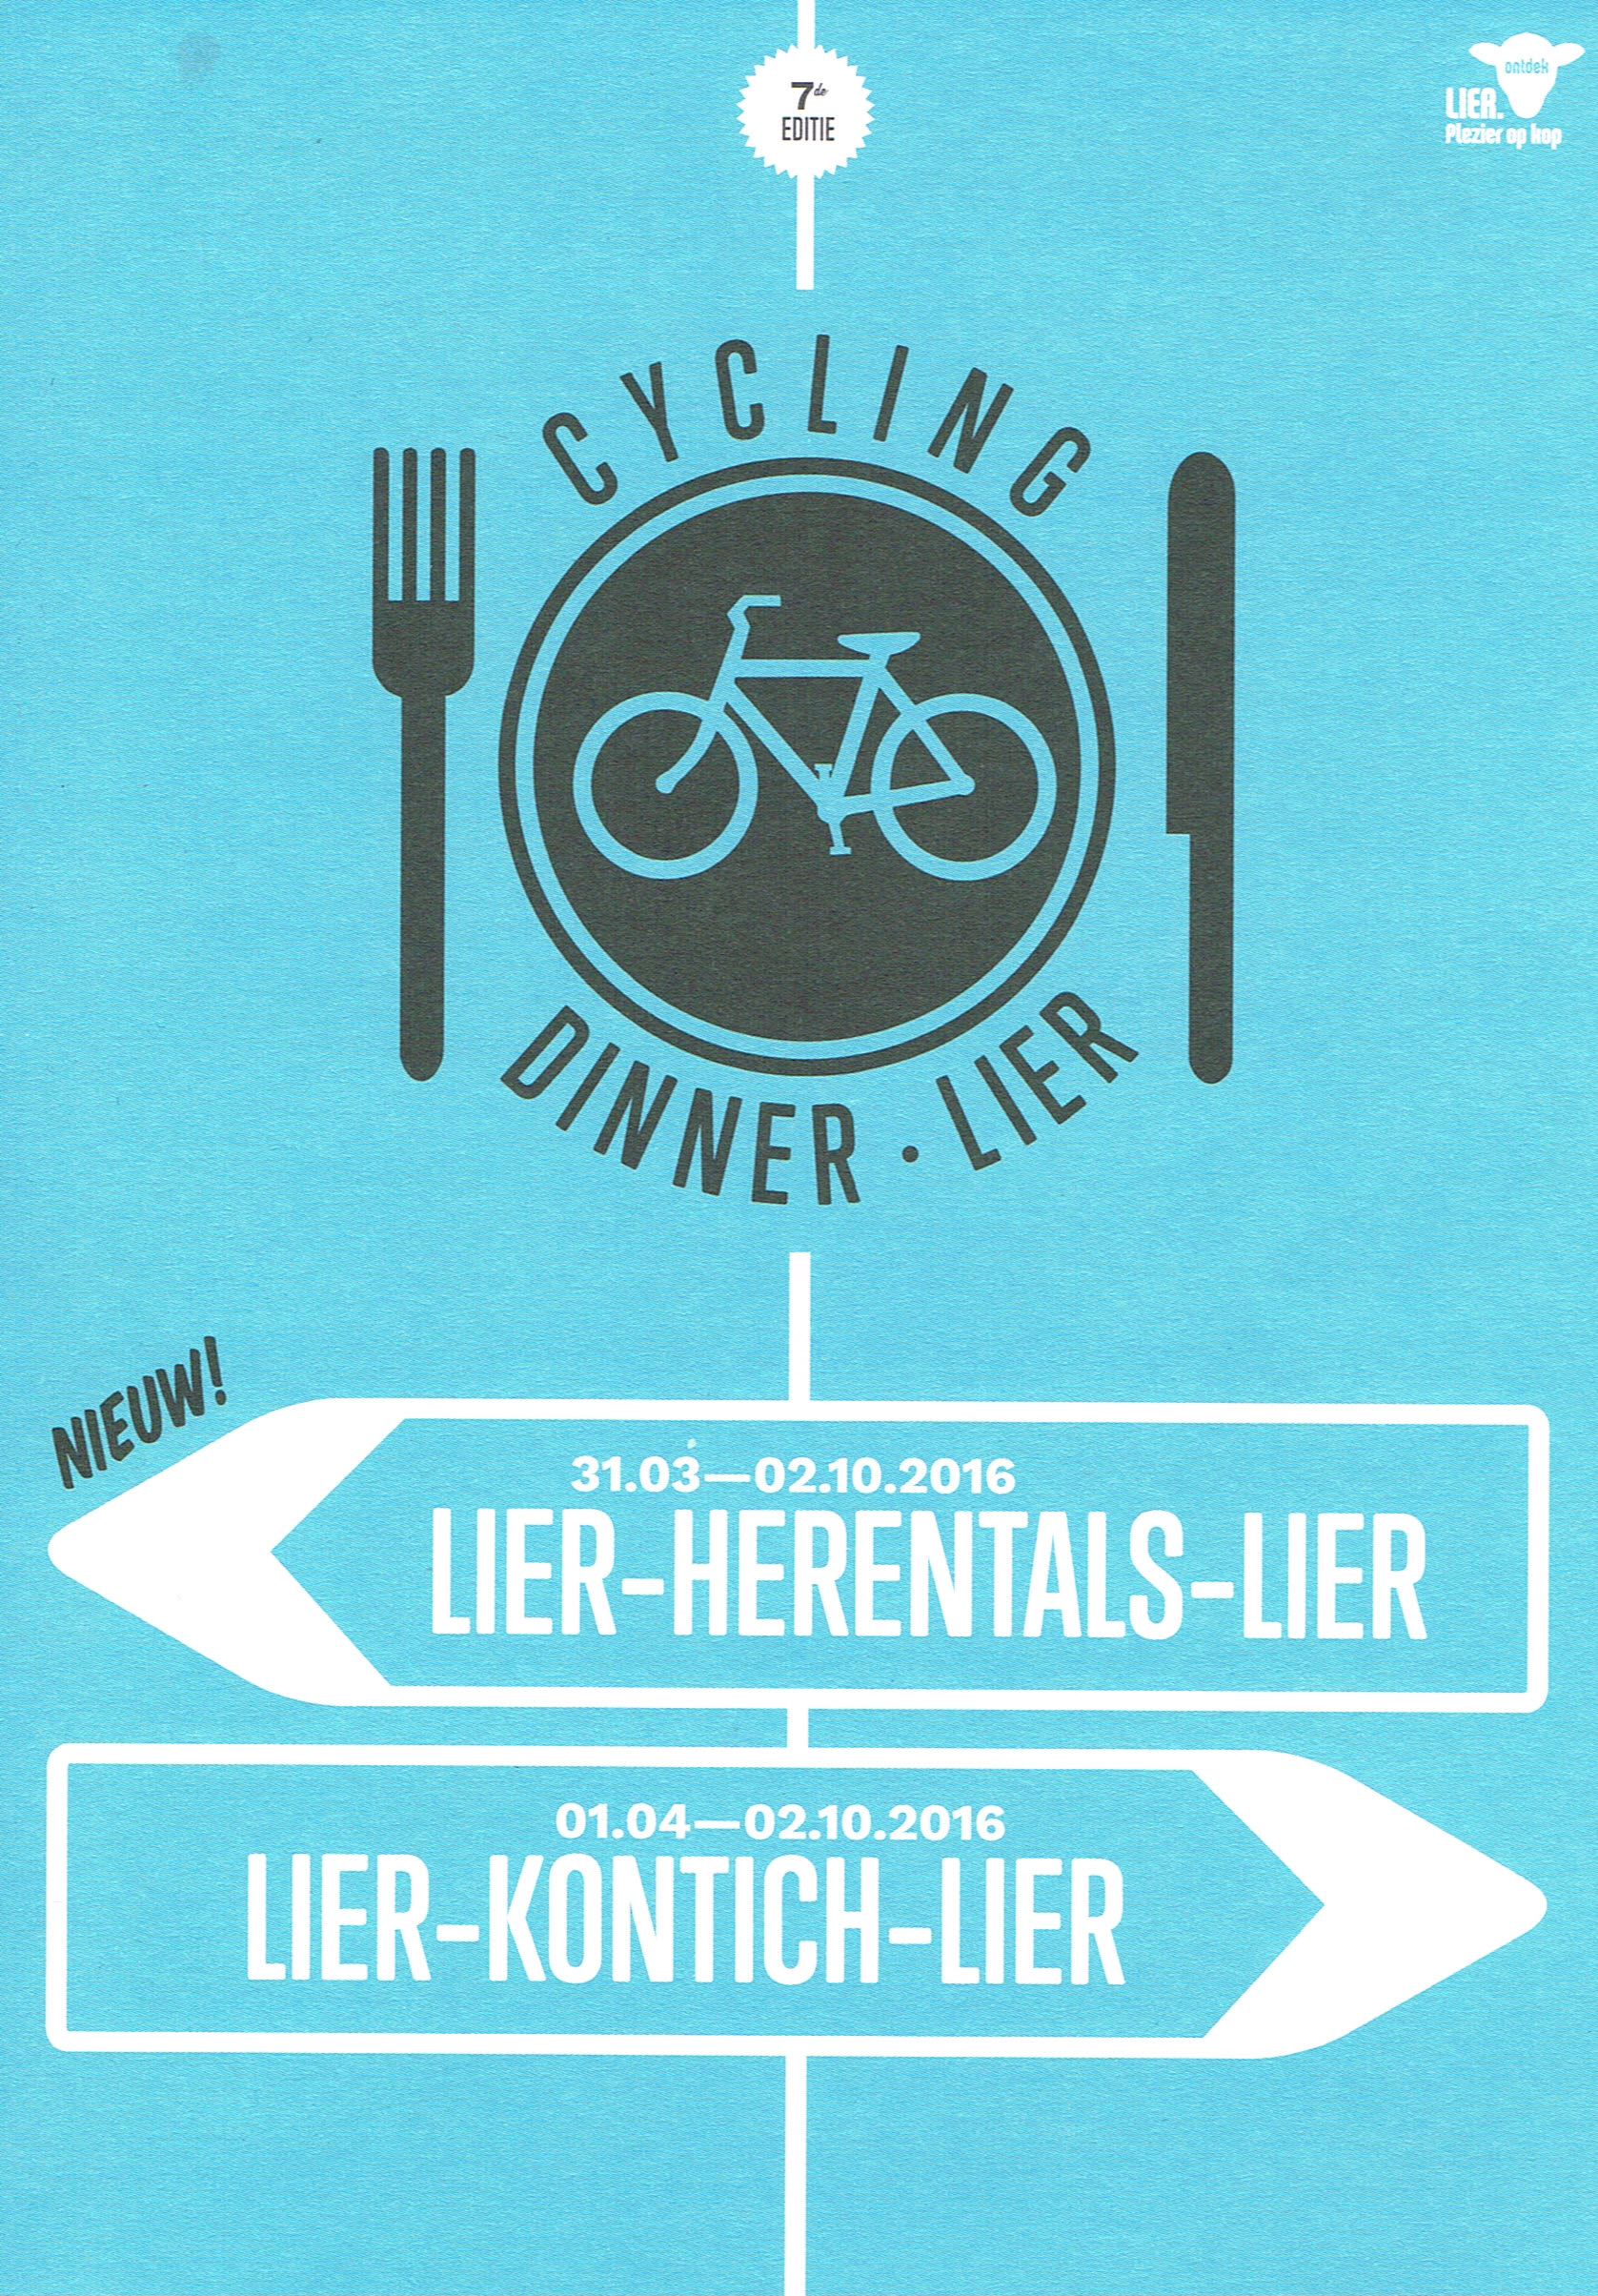 Cycling Dinner 2016